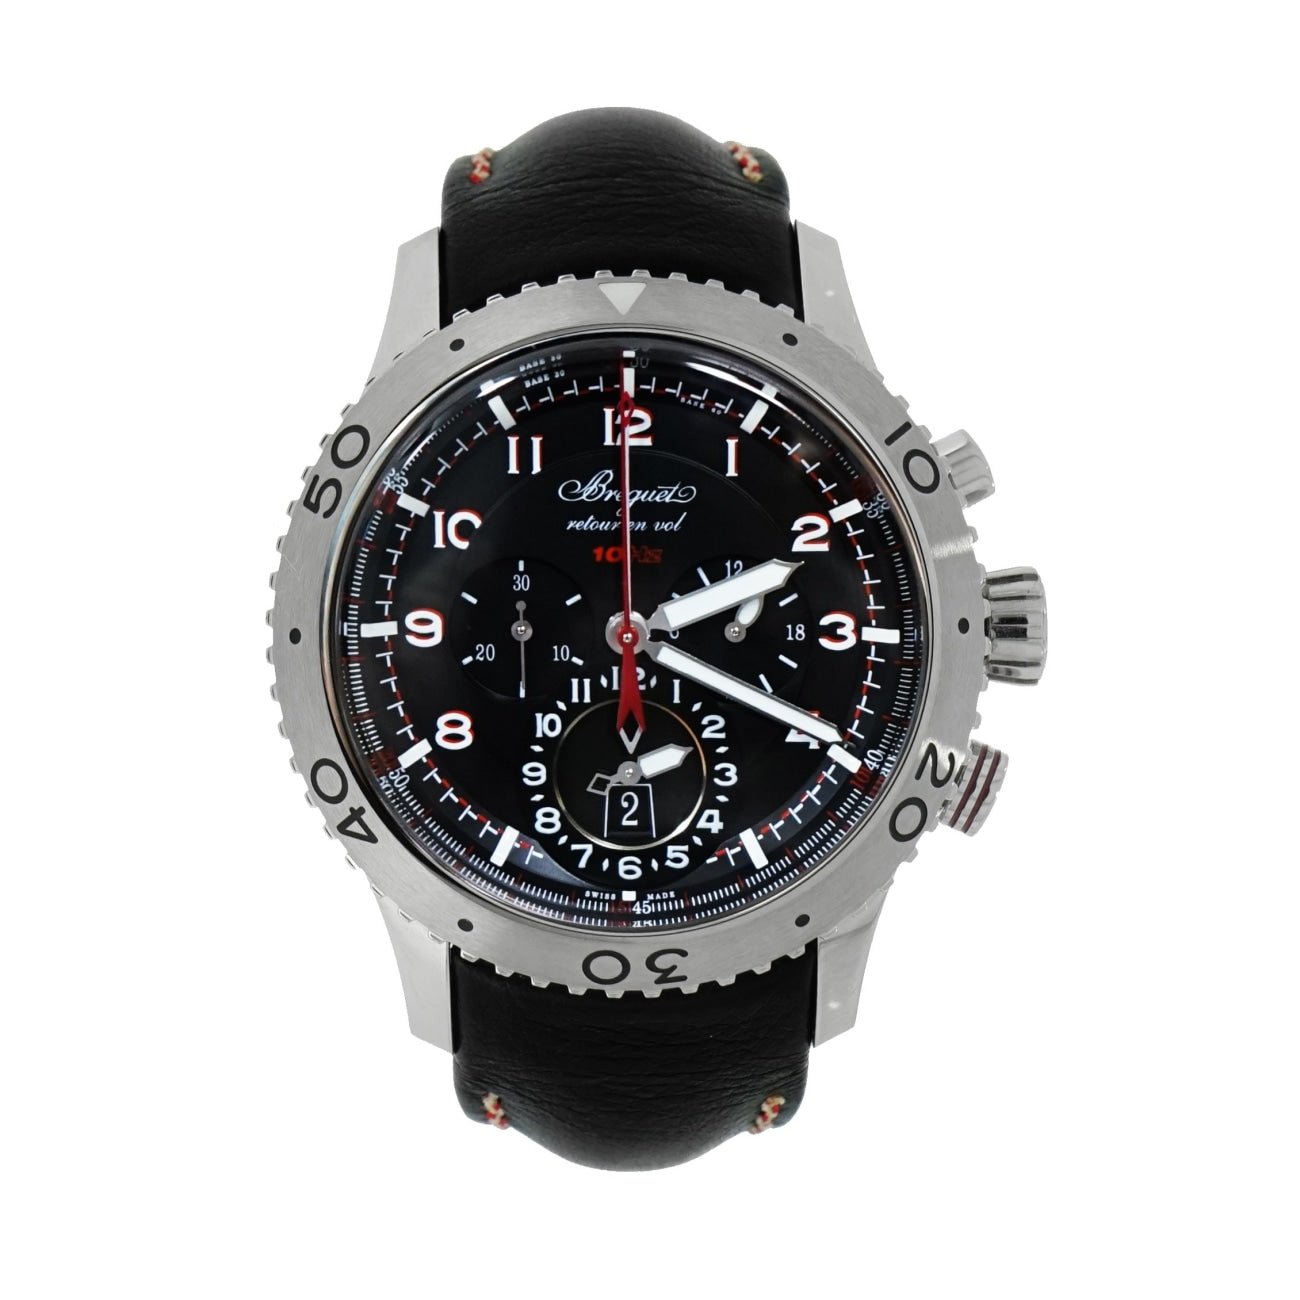 Pre-Owned Breguet Watches - Transatlantique Type XXII Flyback Chronograph | Manfredi Jewels